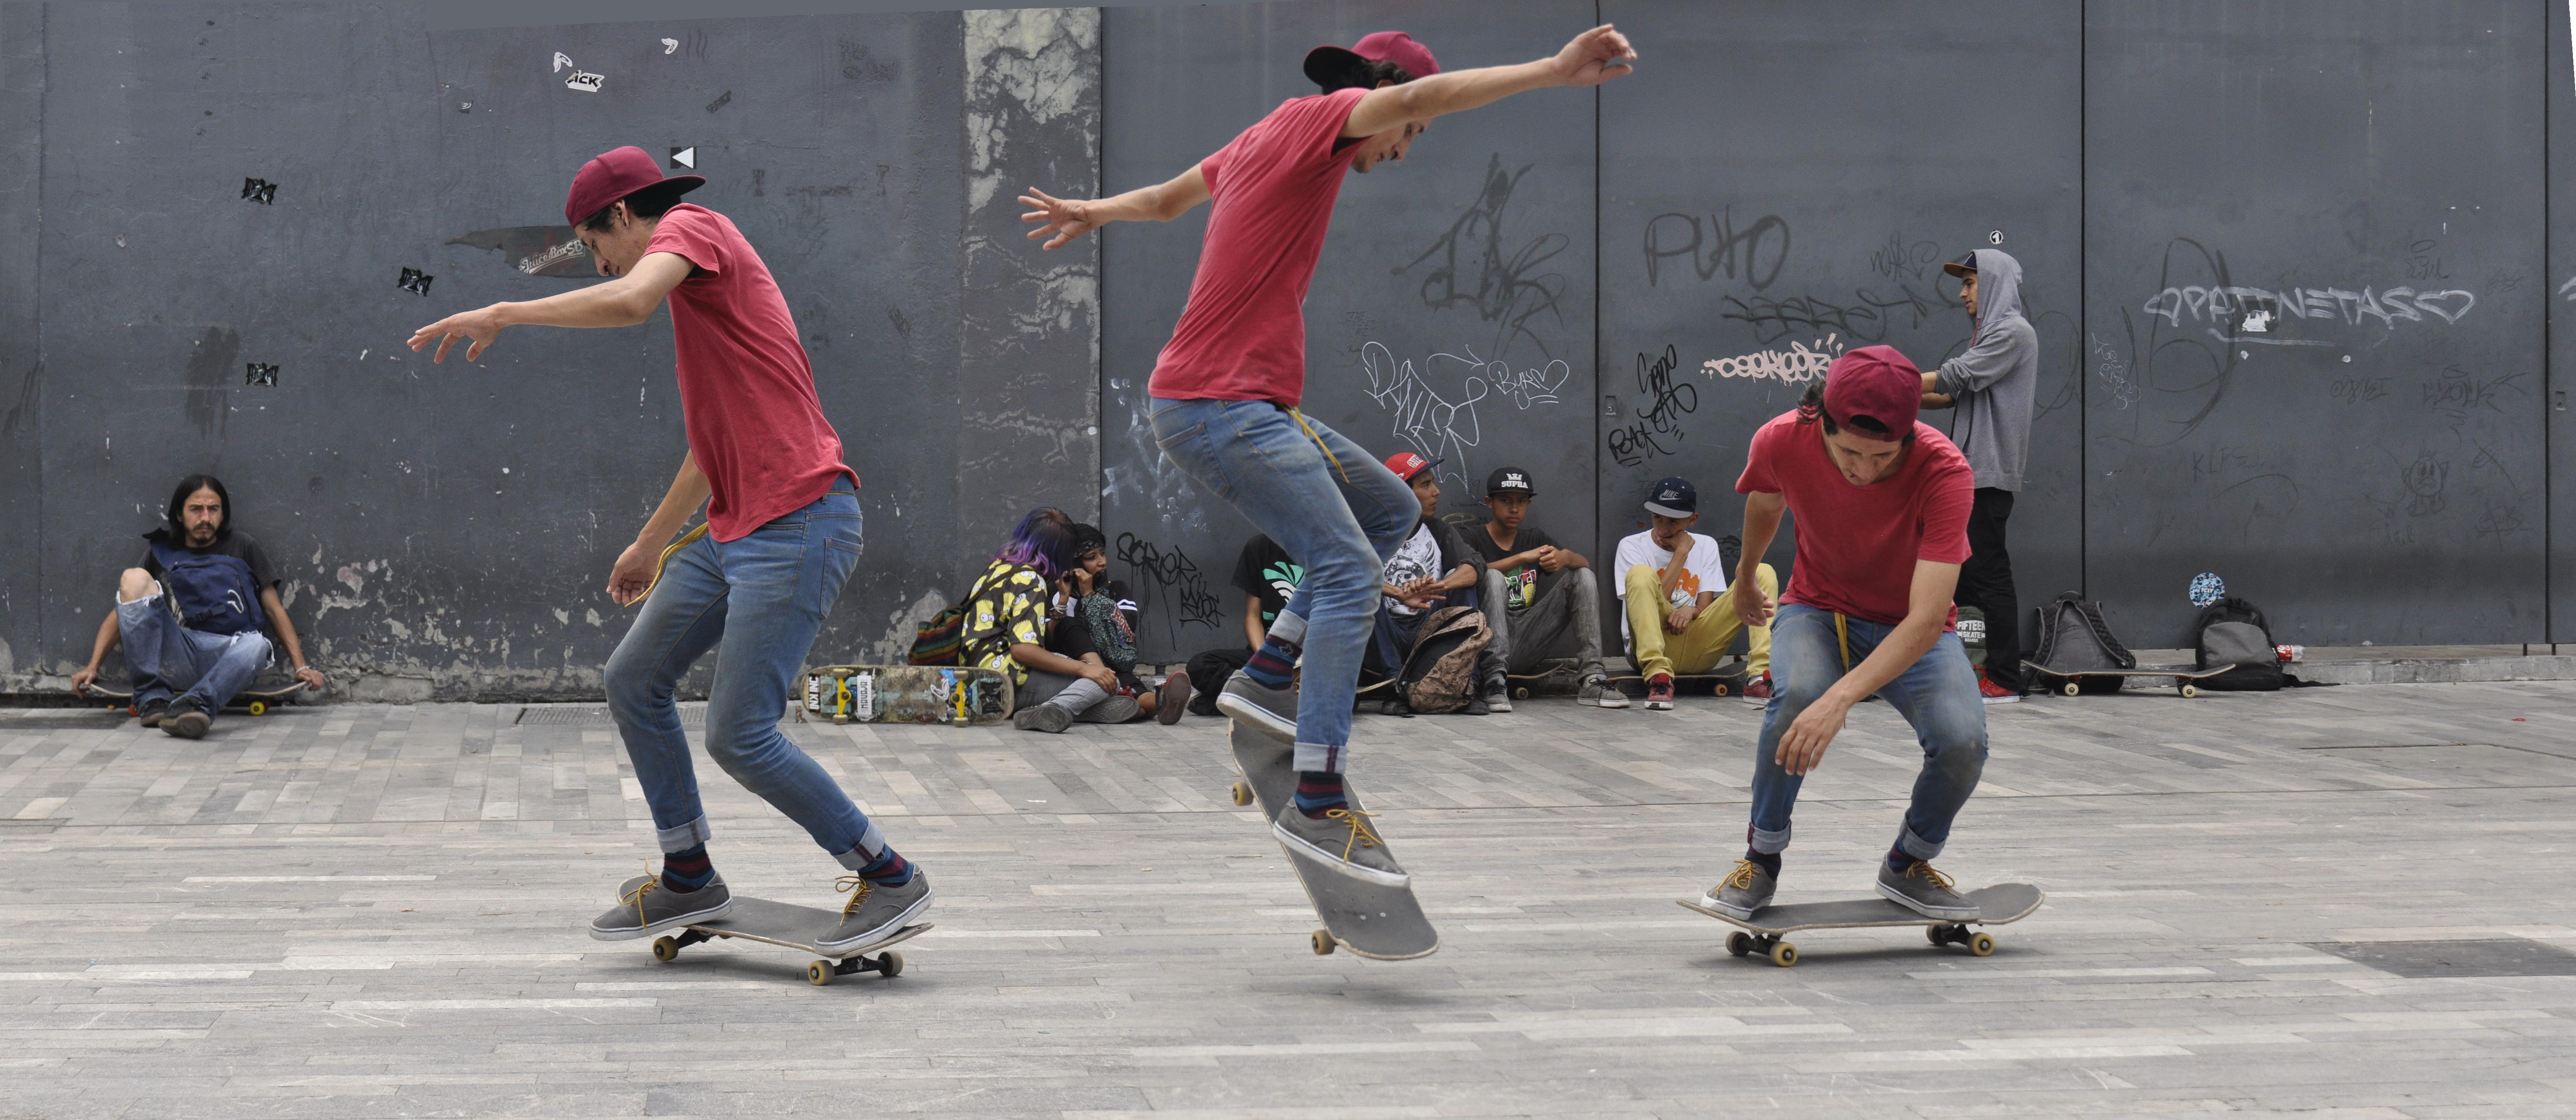 ad117a9da File Skateboarding at Mexico City - Flip - 090.jpg - Wikimedia Commons